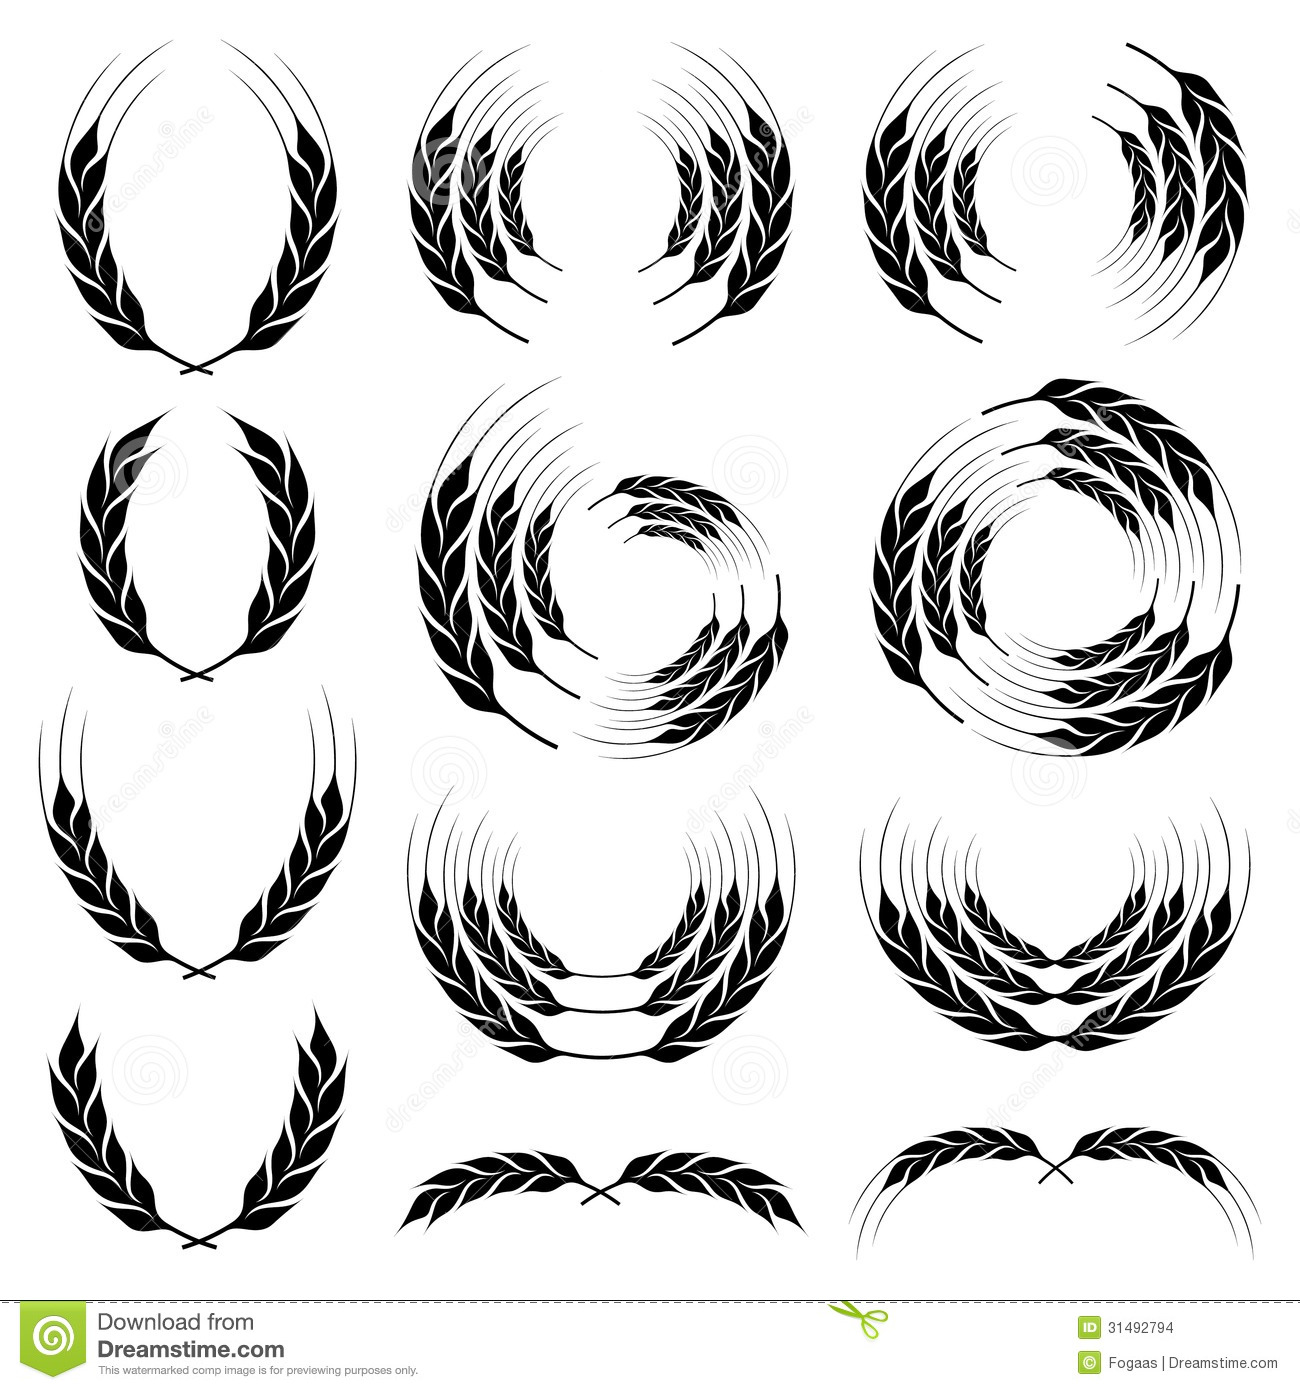 Wheat Wreath Clip Art Wheat ear icon wreath set on